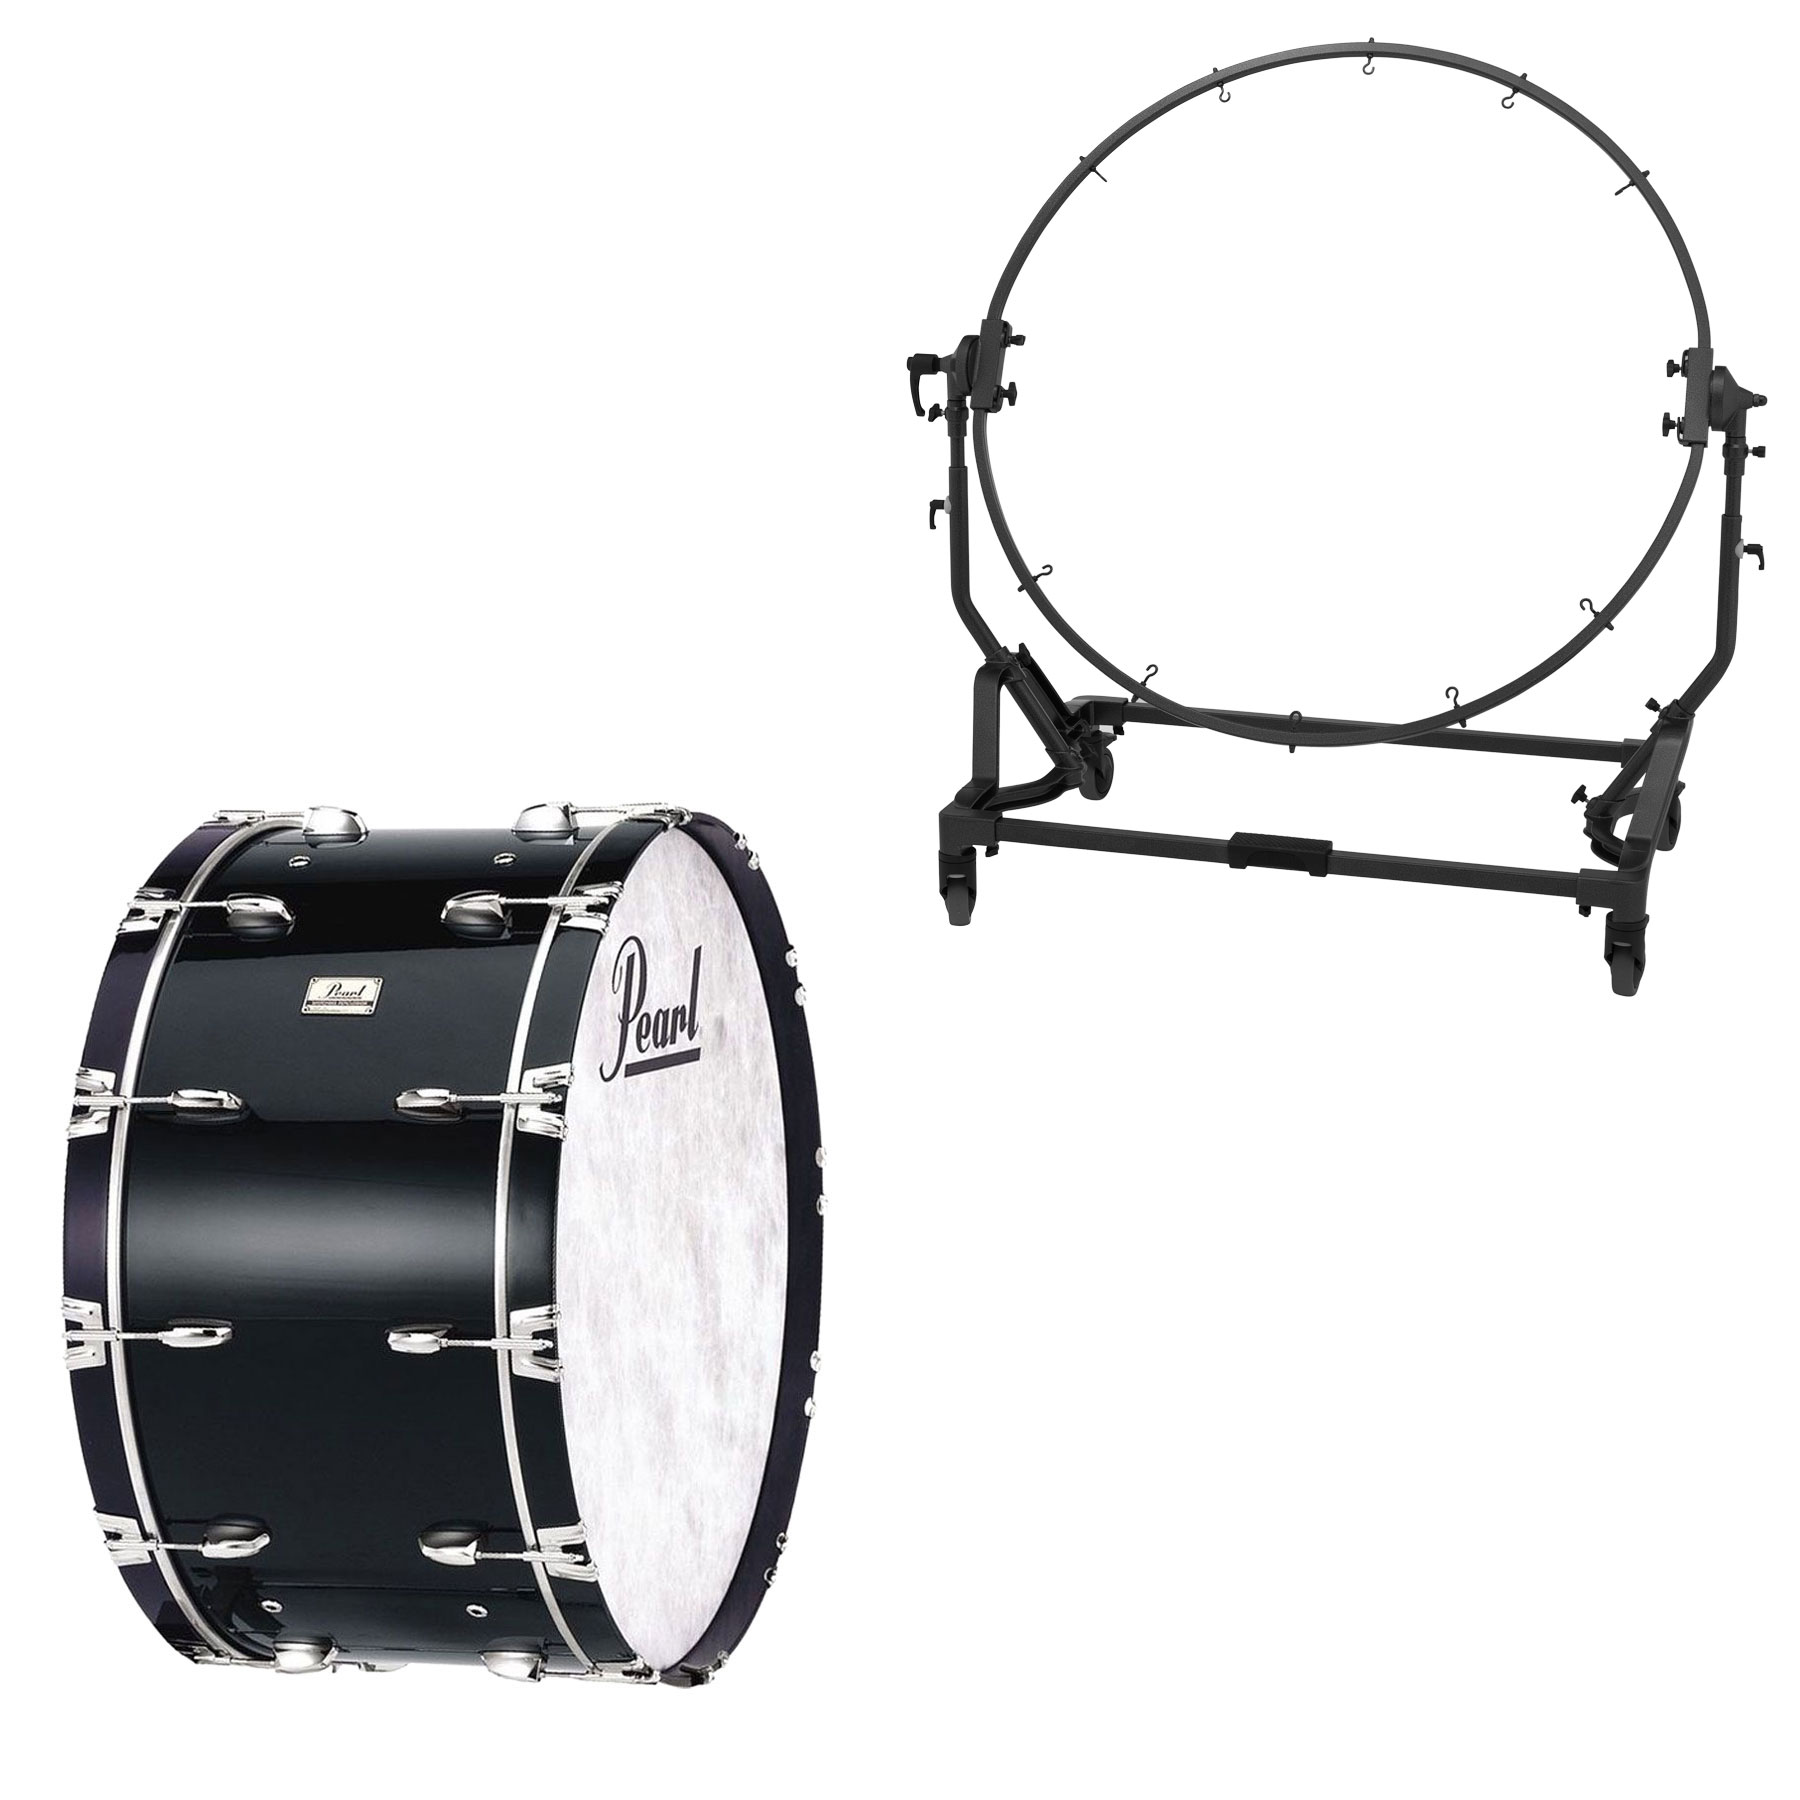 "Pearl 36"" (Diameter) x 16"" (Deep) Concert Series Kapur Concert Bass Drum with STBD Stand"